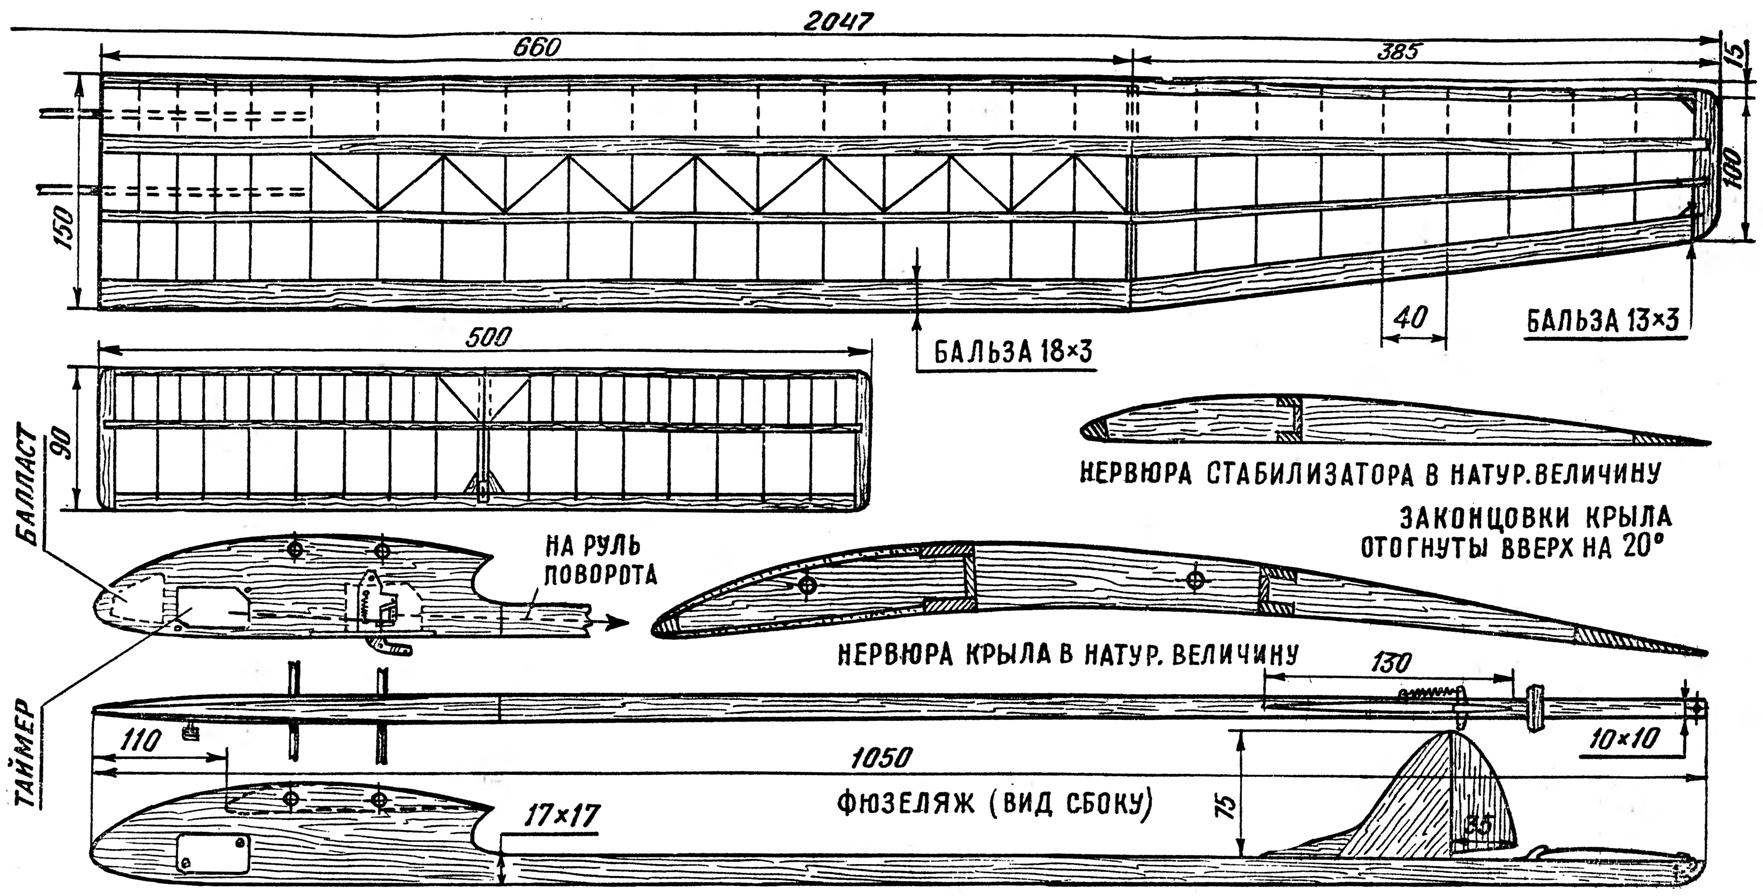 Drawings of a model glider A-2